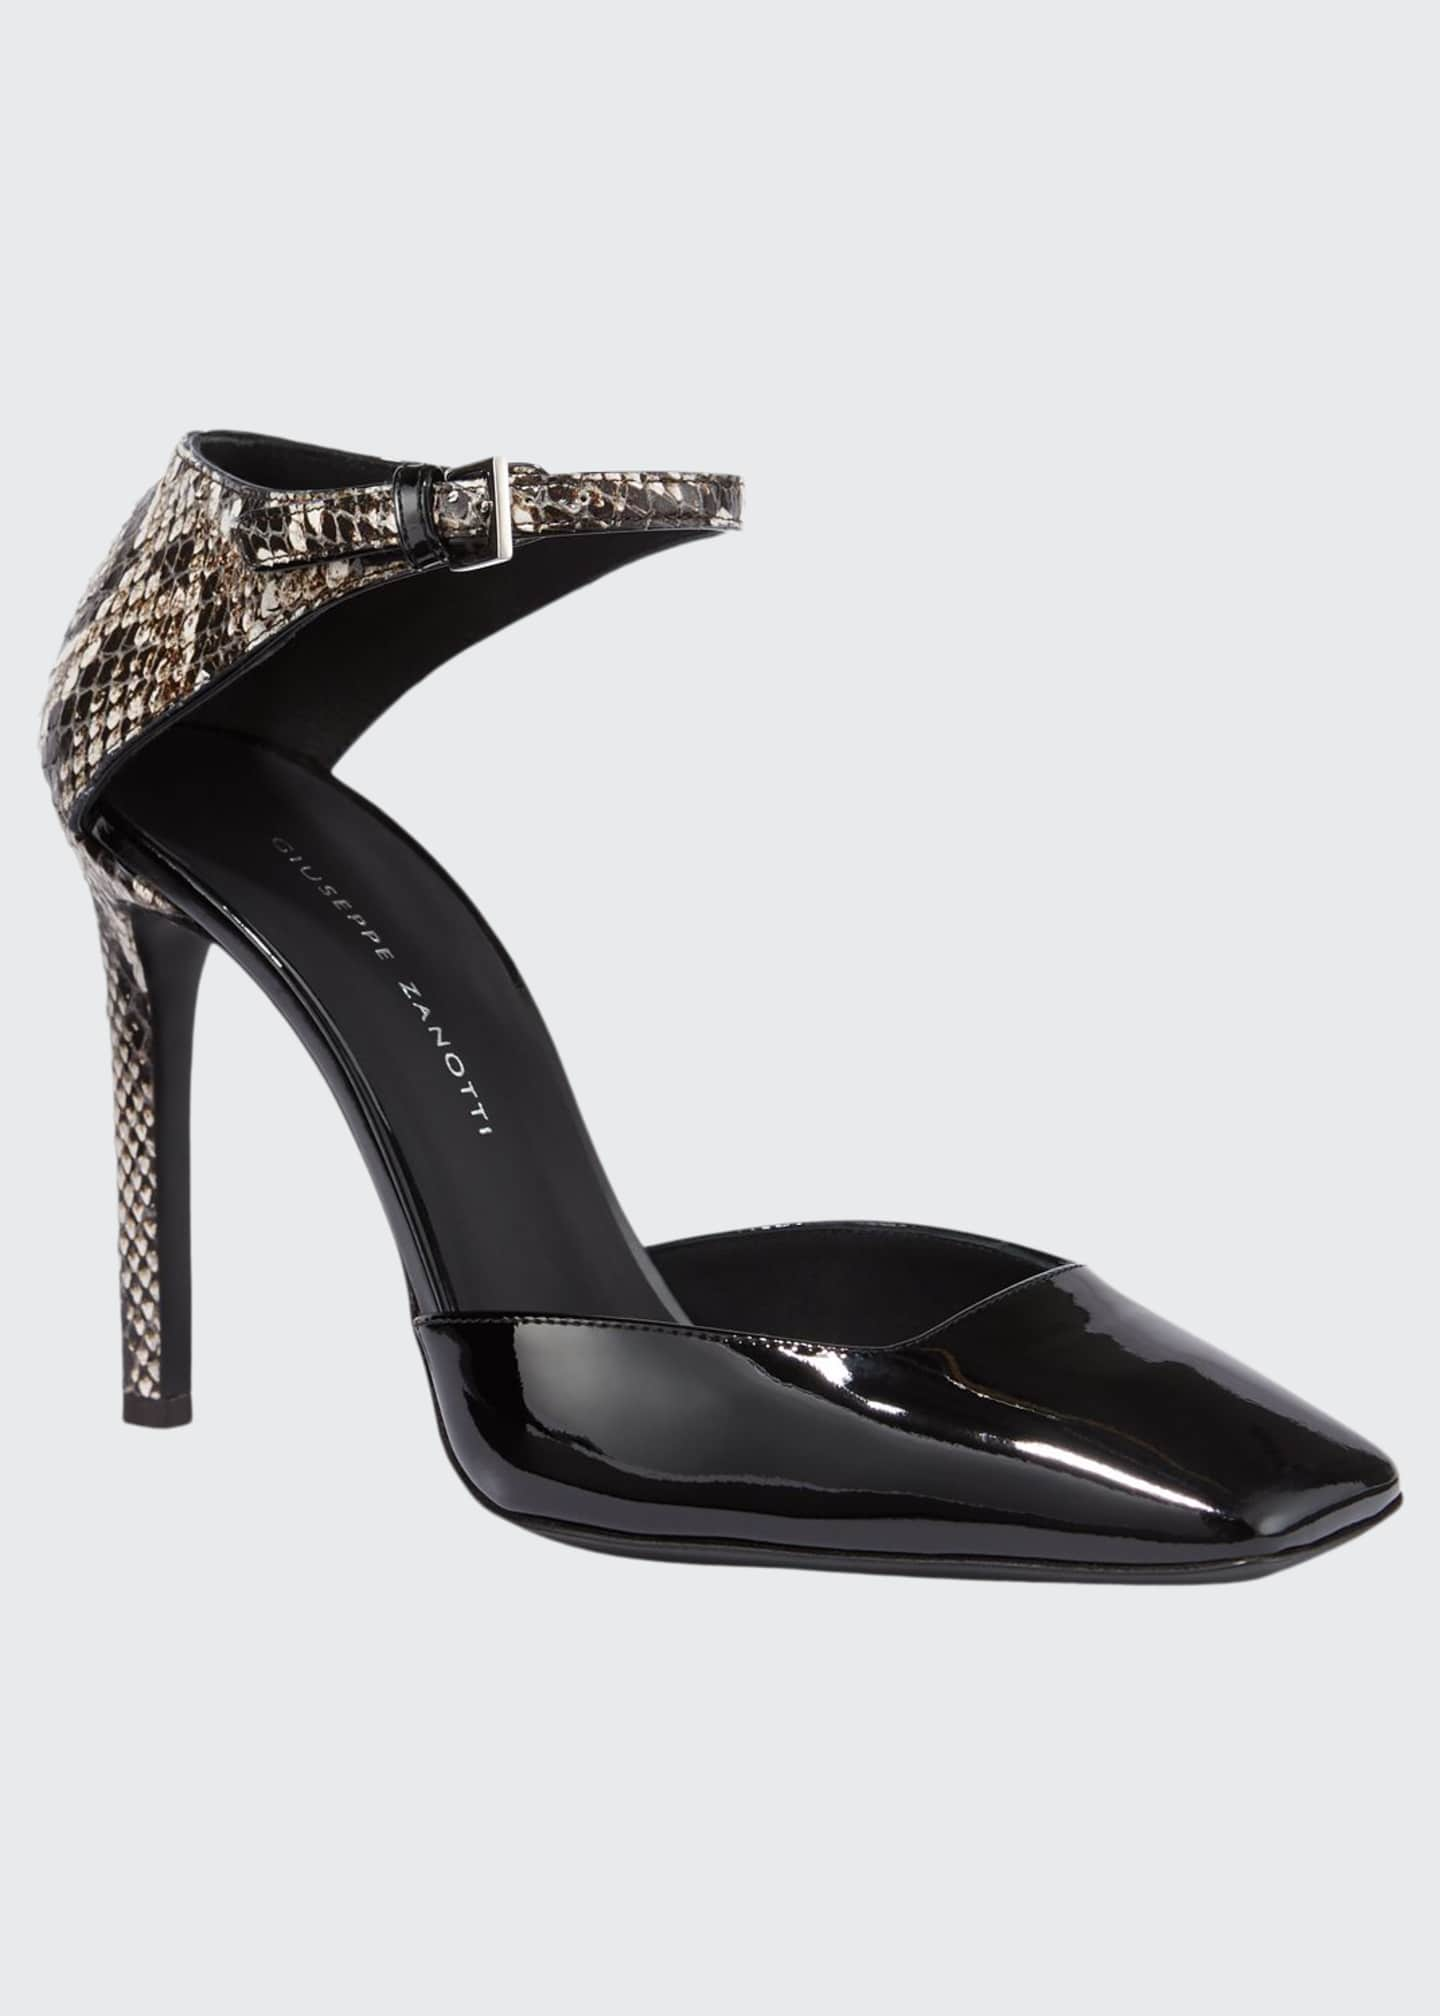 Giuseppe Zanotti Patent and Snake-Print Ankle-Wrap Pumps